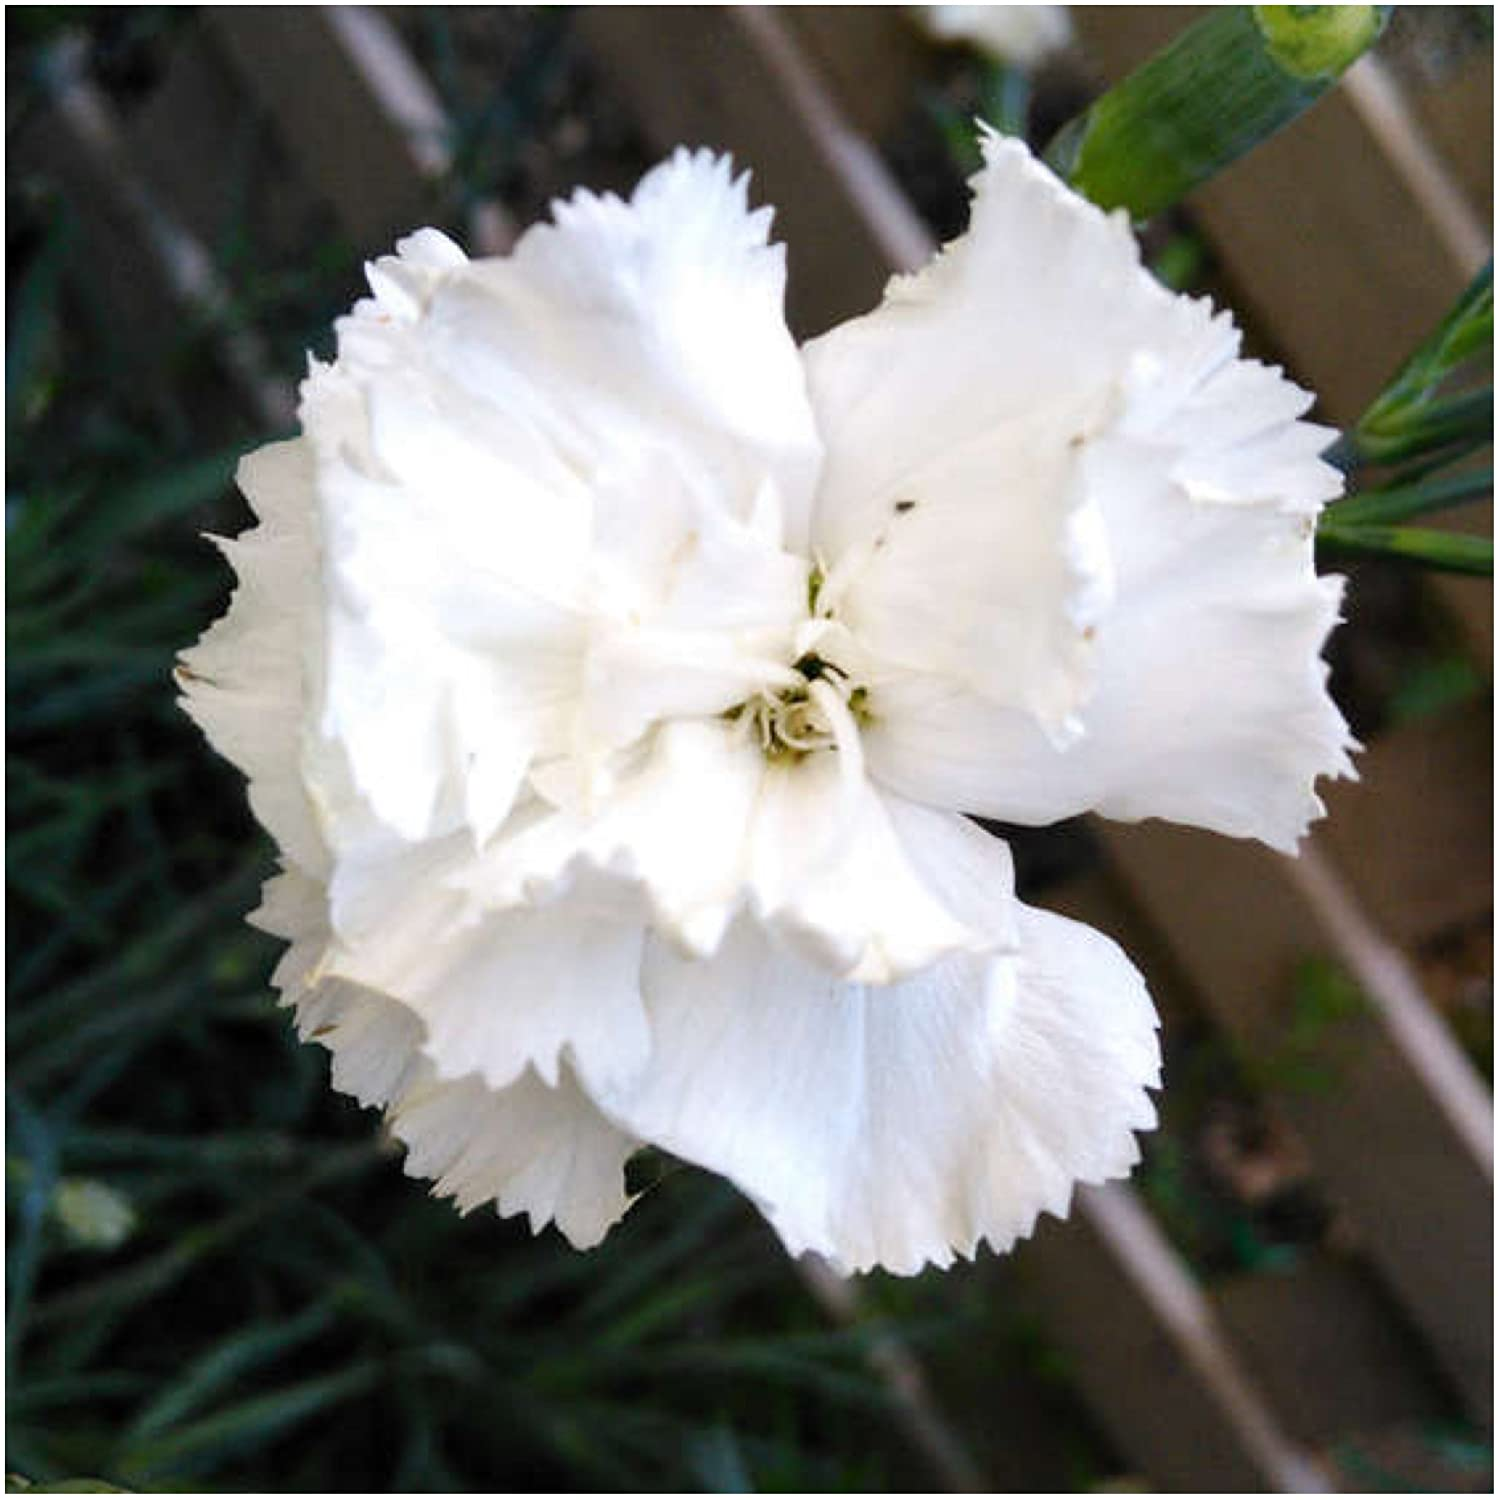 Amazon Package Of 500 Seeds Grenadin White Carnation